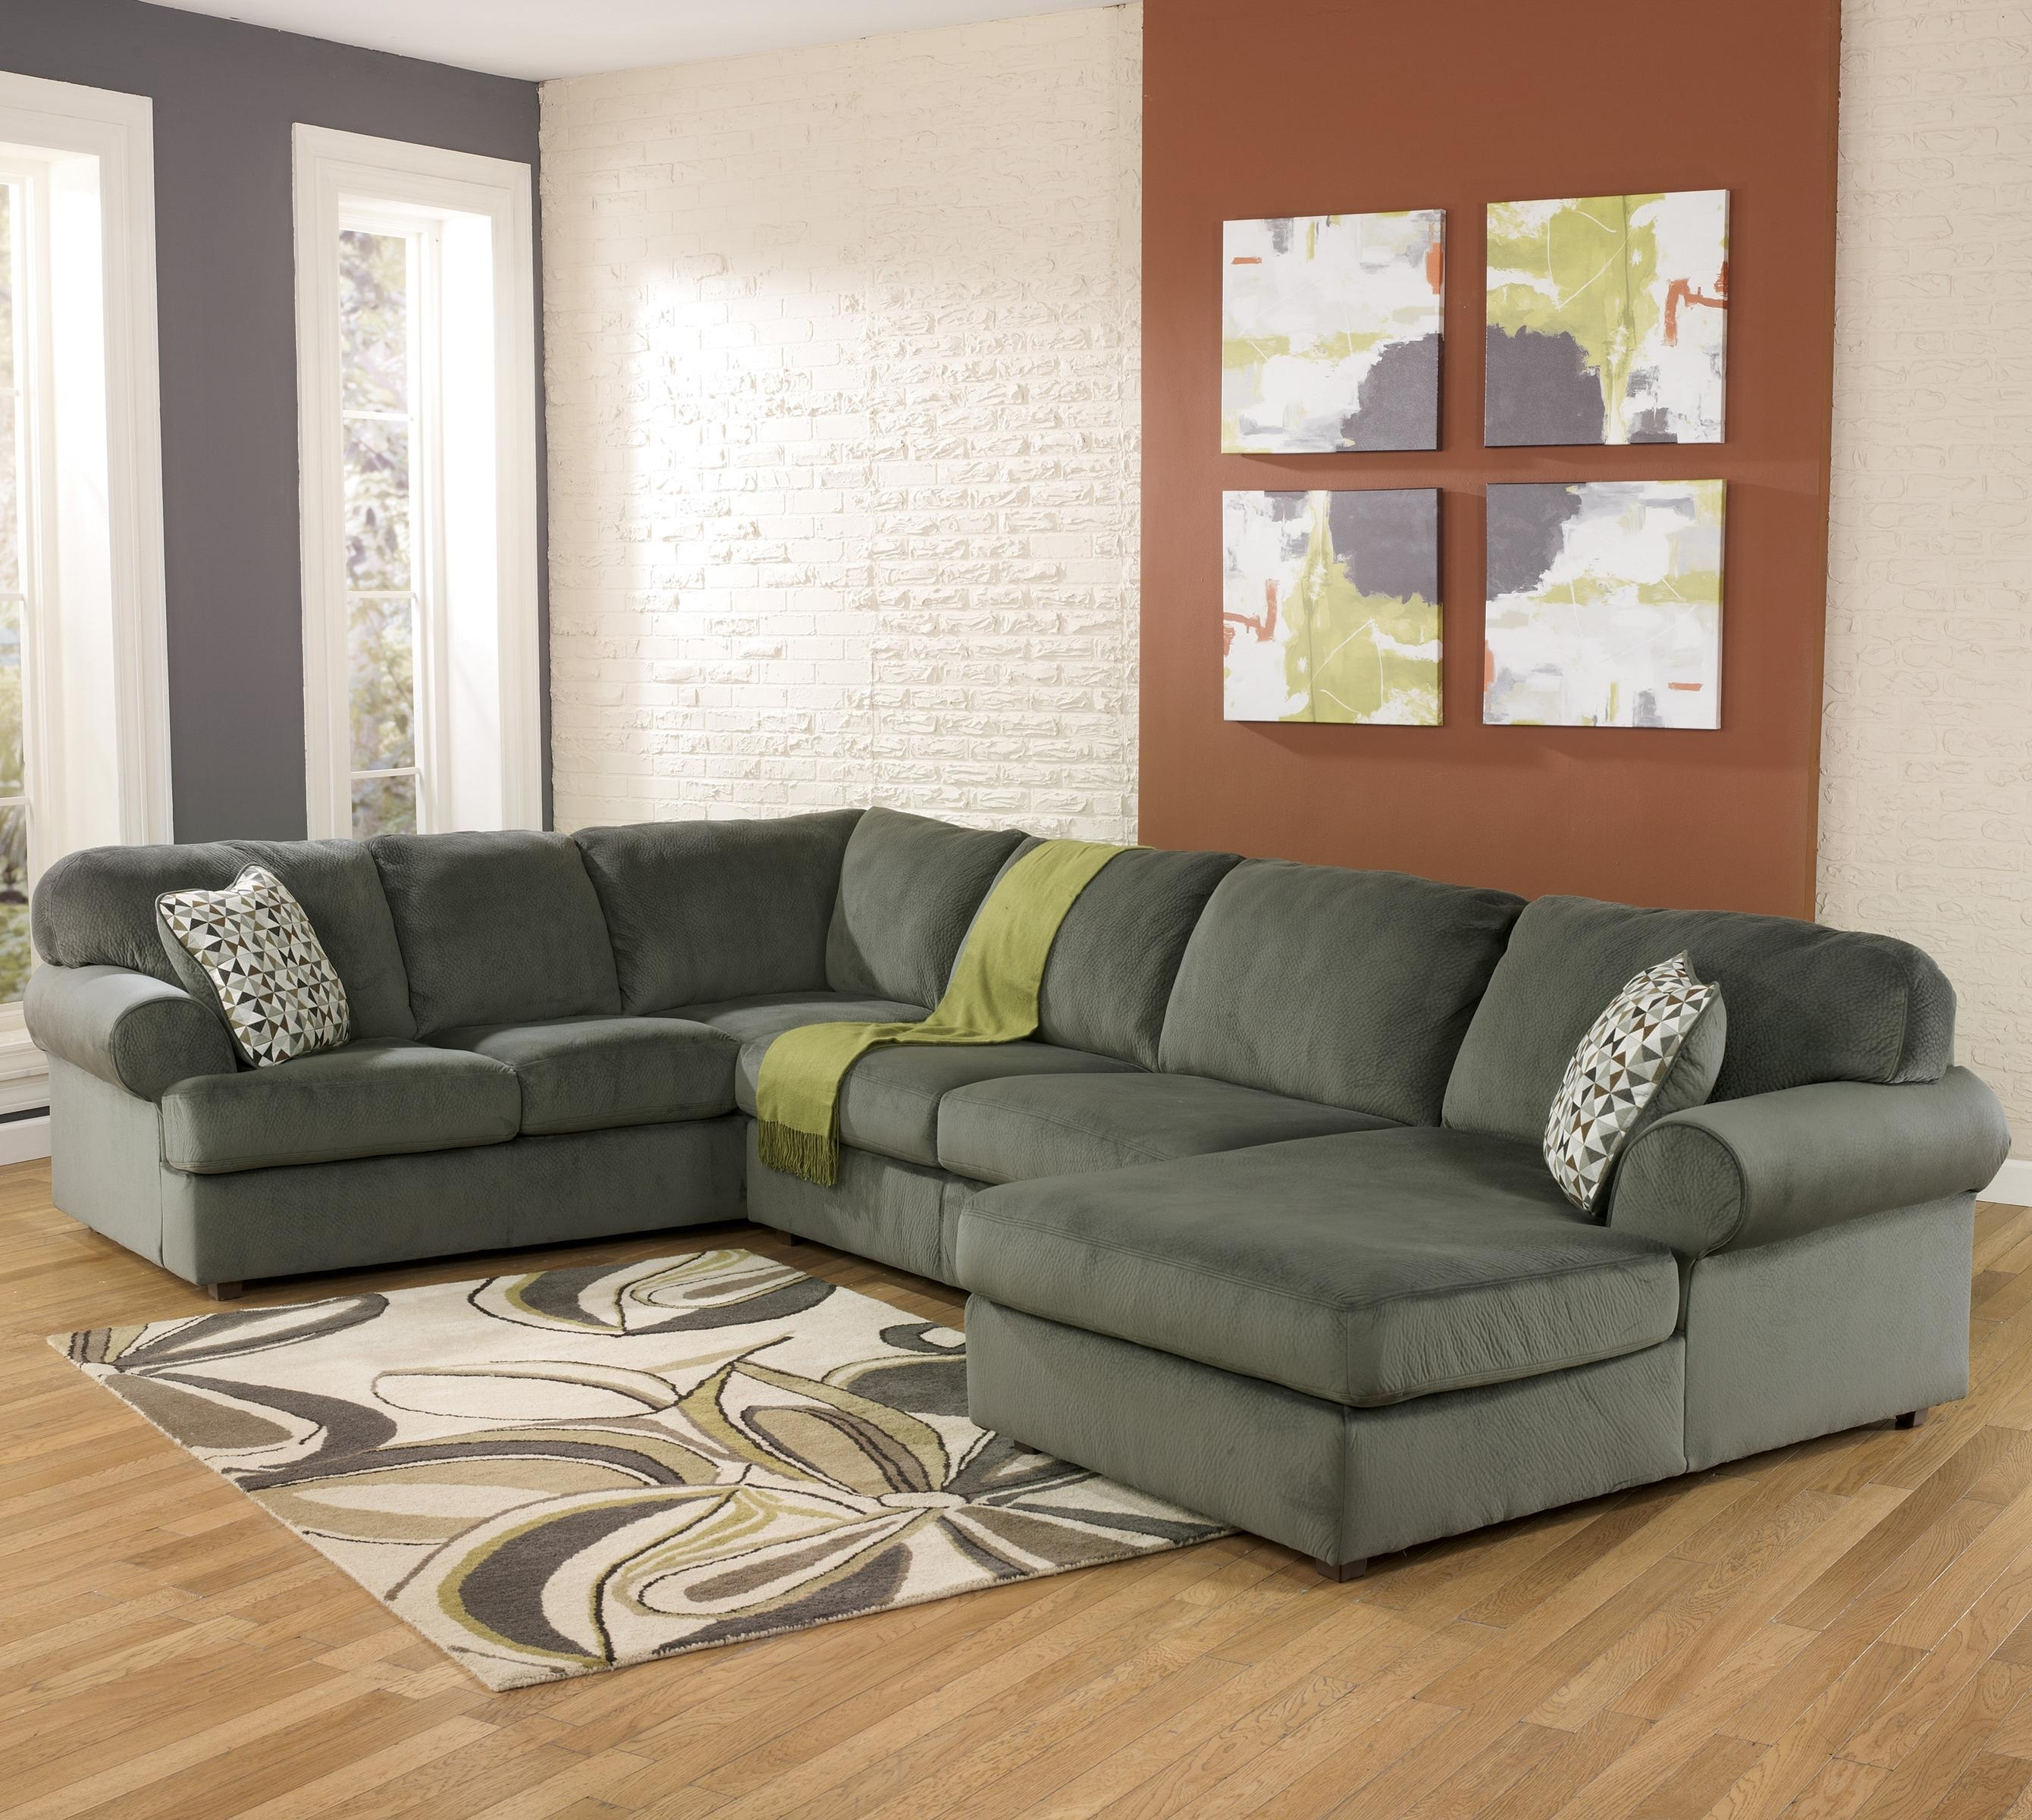 Casual Sectional Sofa With Right Chaisesignature Design For Lancaster Pa Sectional Sofas (Image 4 of 10)